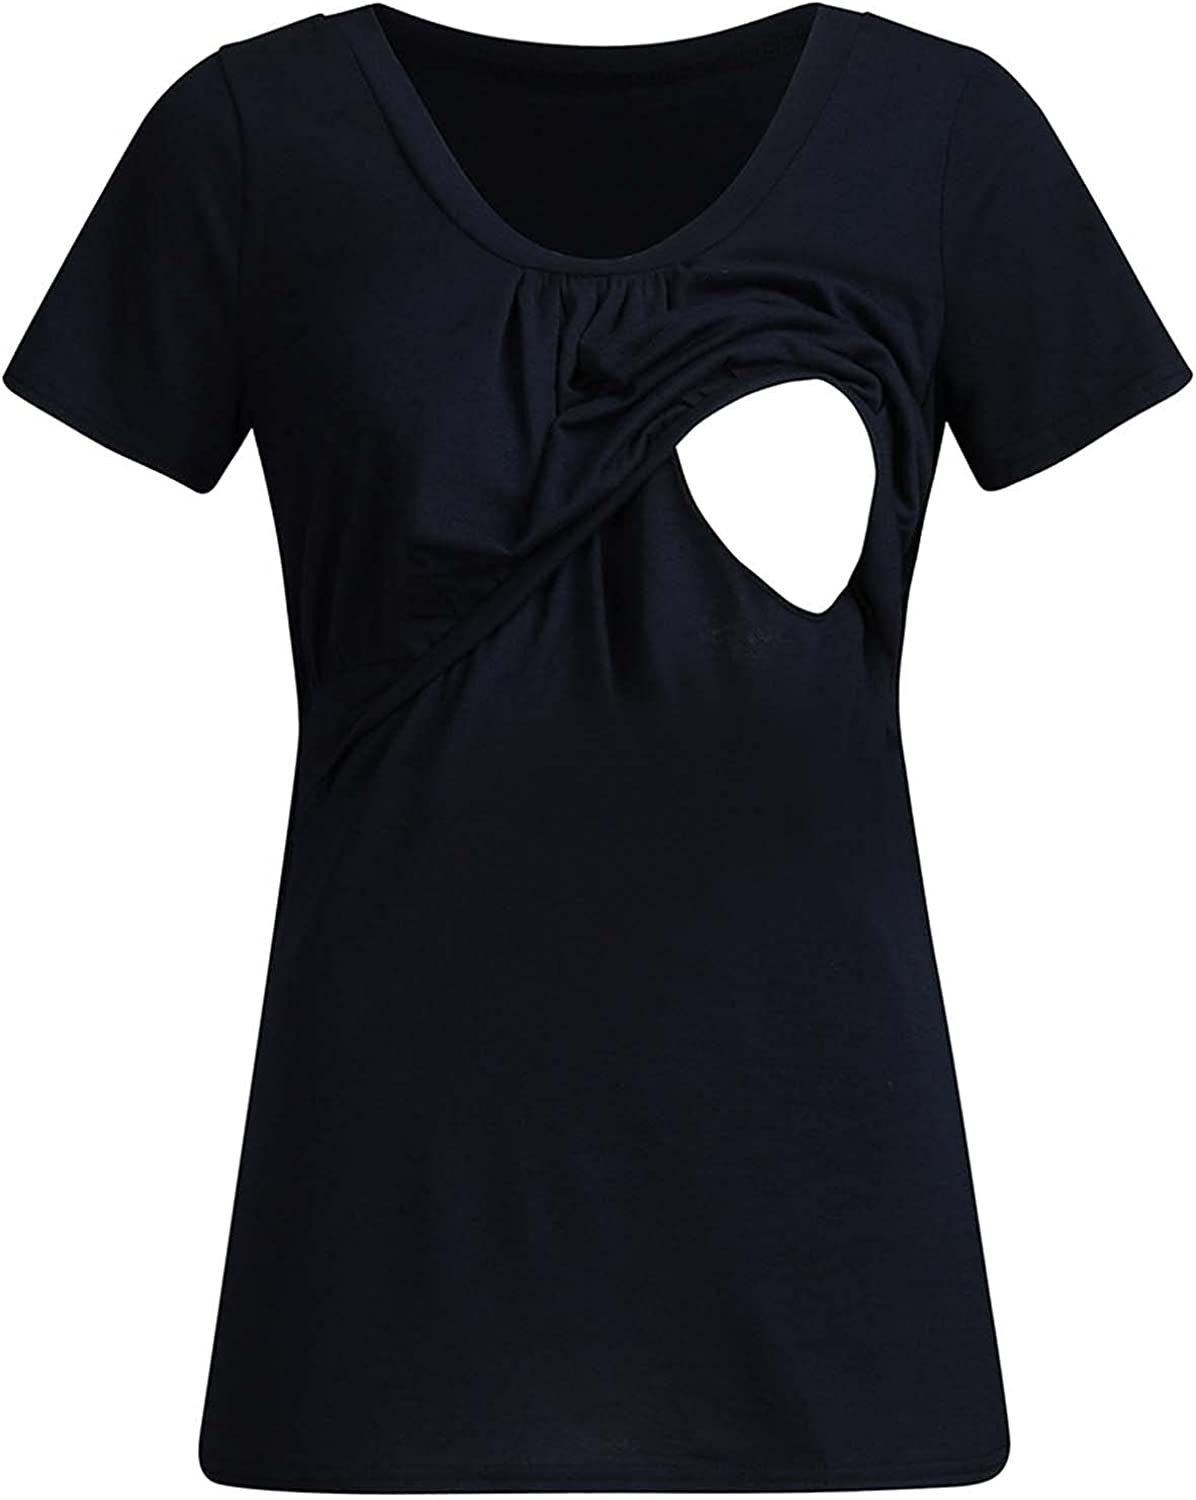 Maternity Clothes Pregnant Women Clothes Summer Short-Sleeved Breastfeeding Pregnant T-Shirt Top